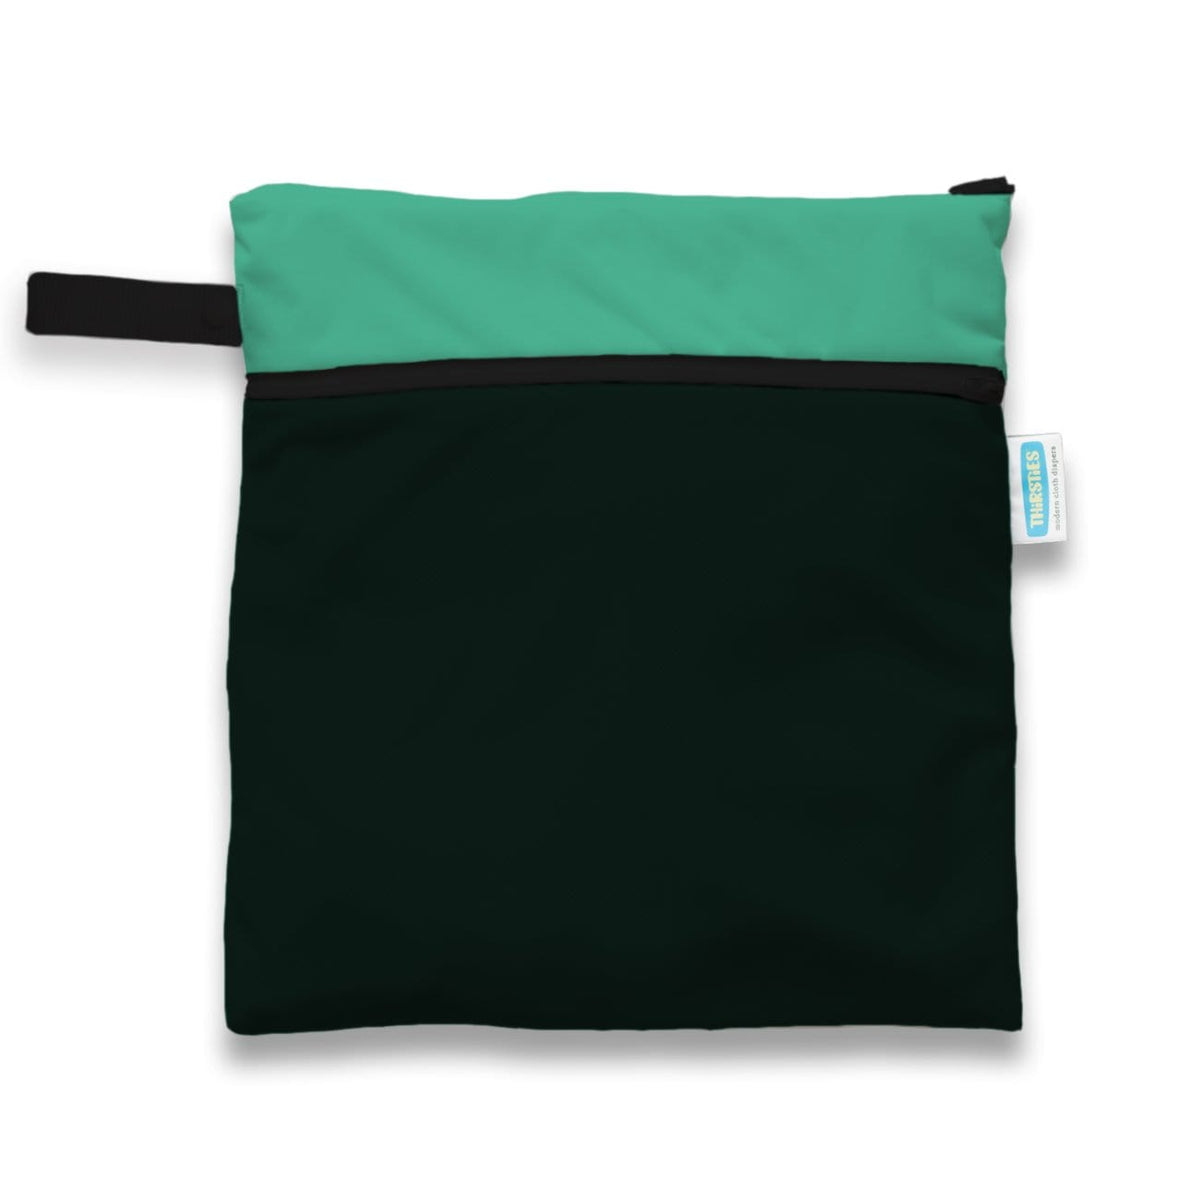 Thirsties Wet/Dry Bag - Seafoam